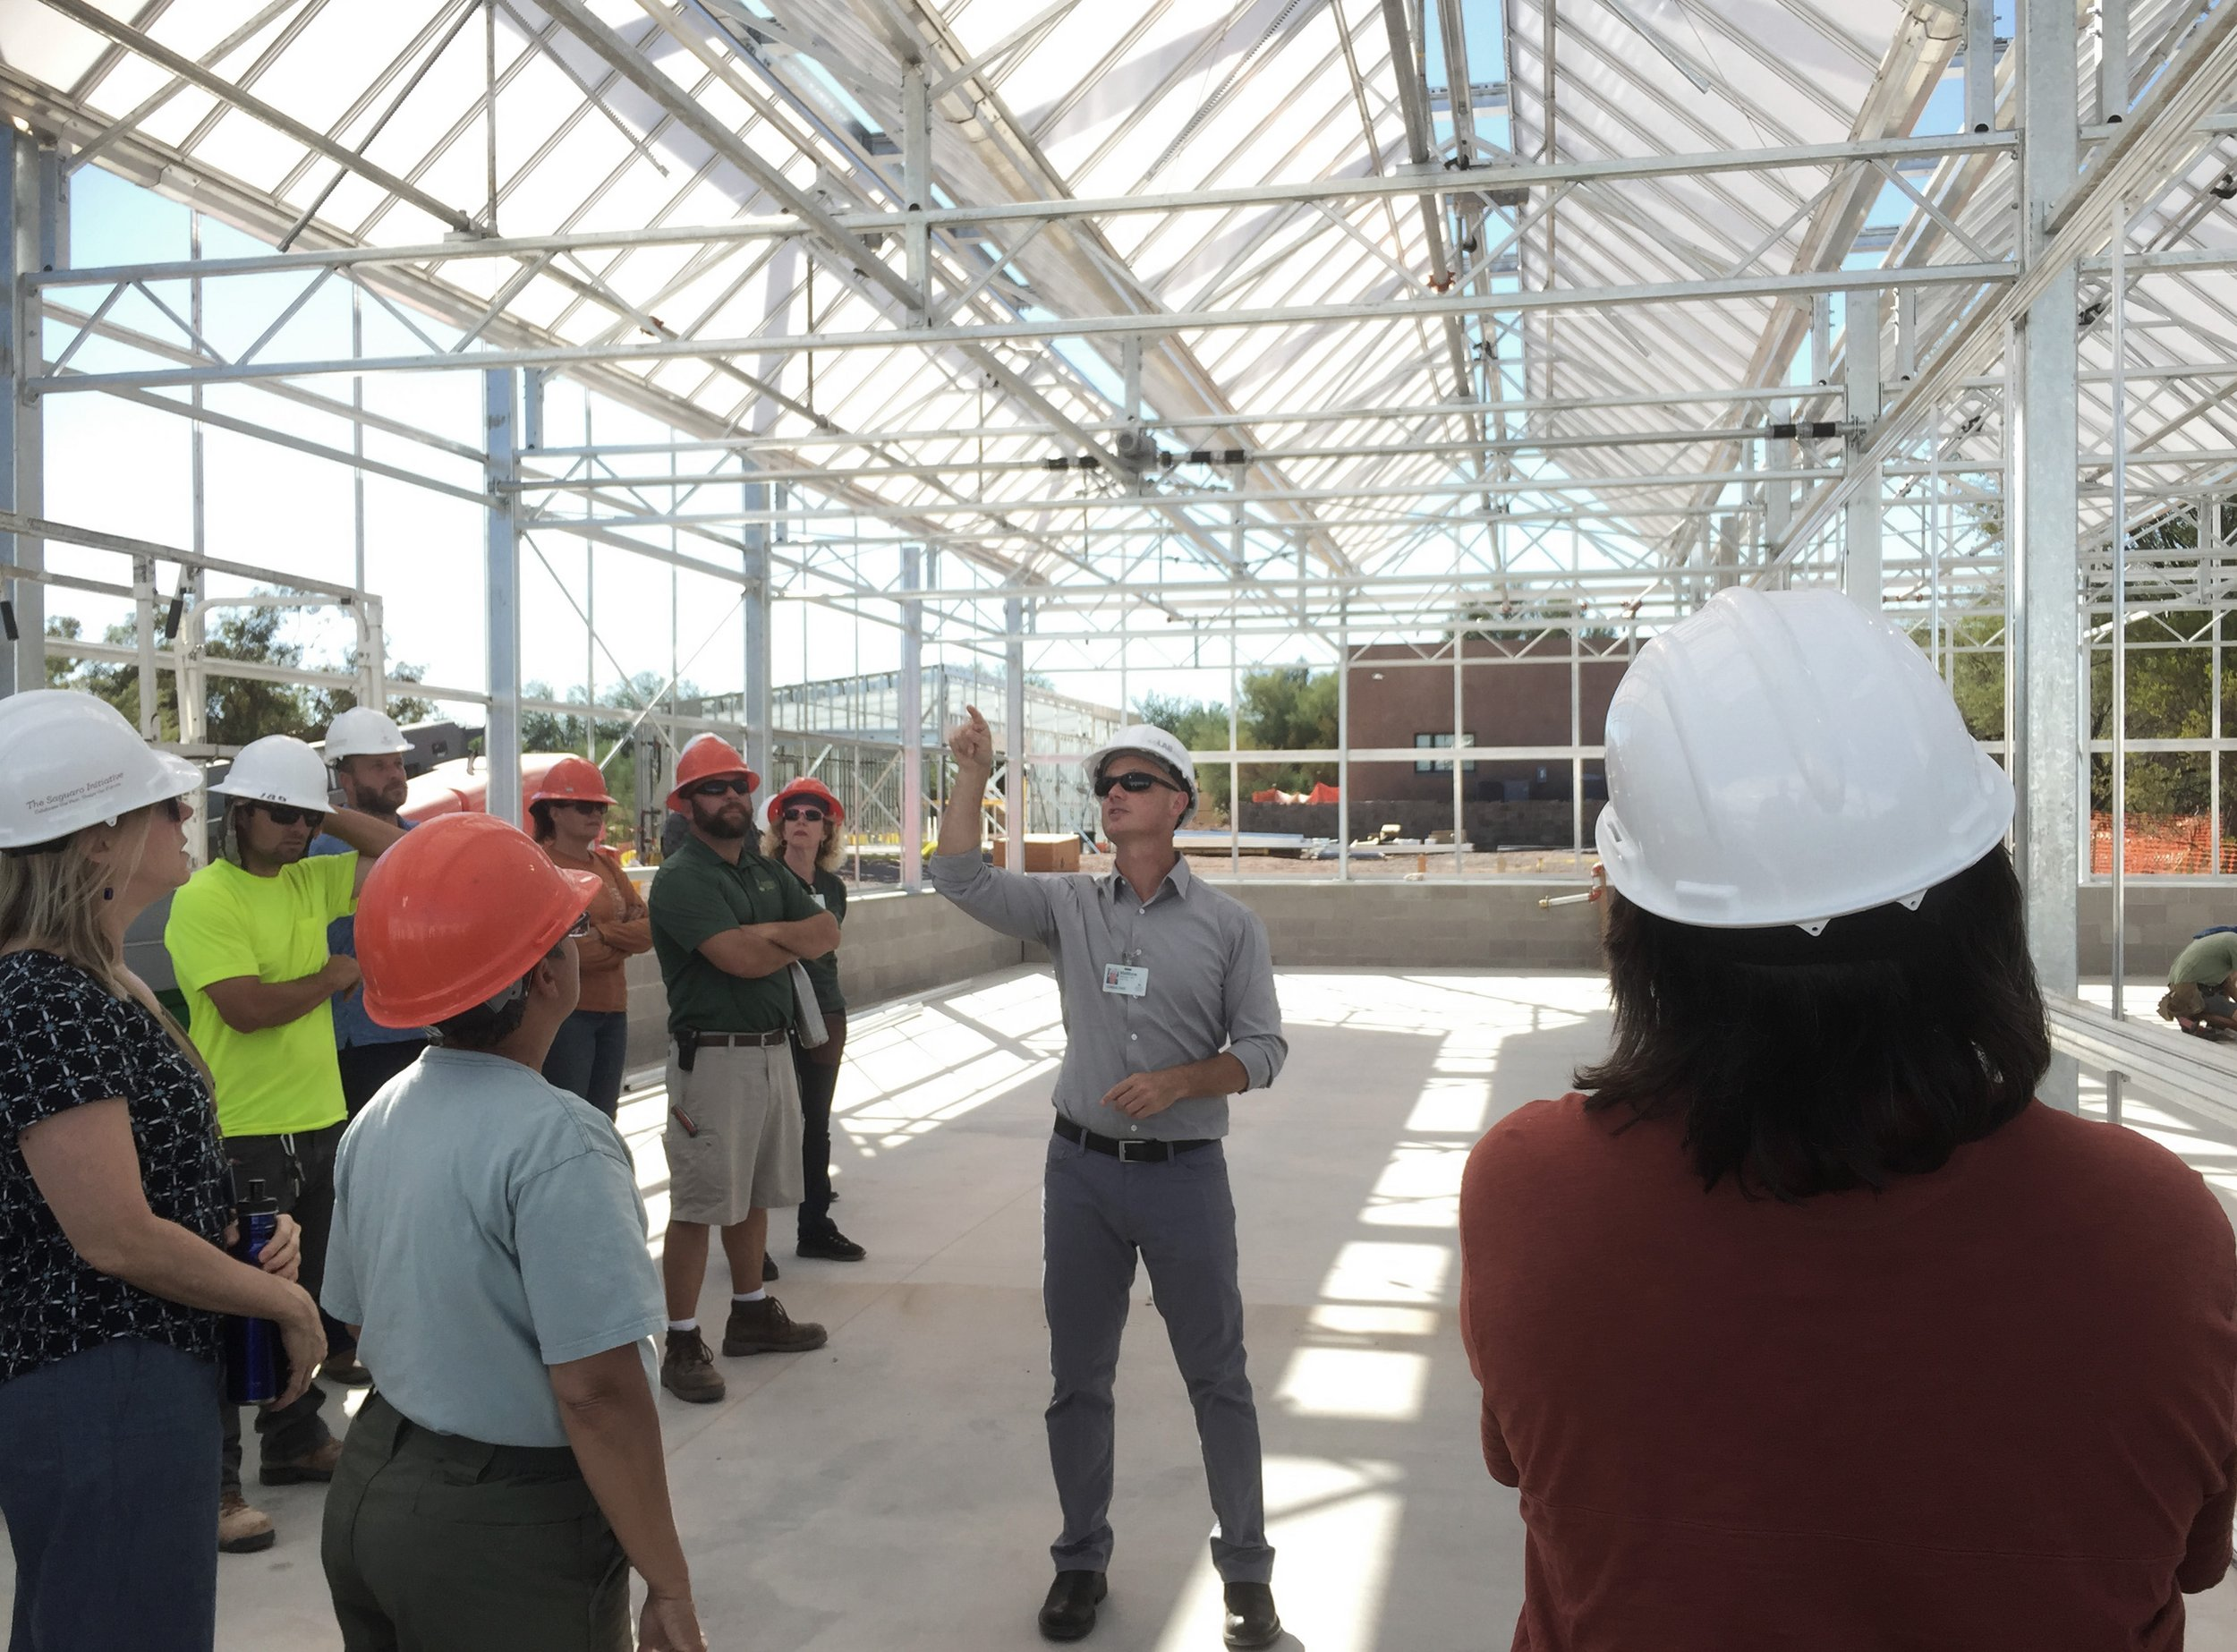 Matthew Salenger of coLAB studio leads a tour of the site, culminating at the new Greenhouse building.